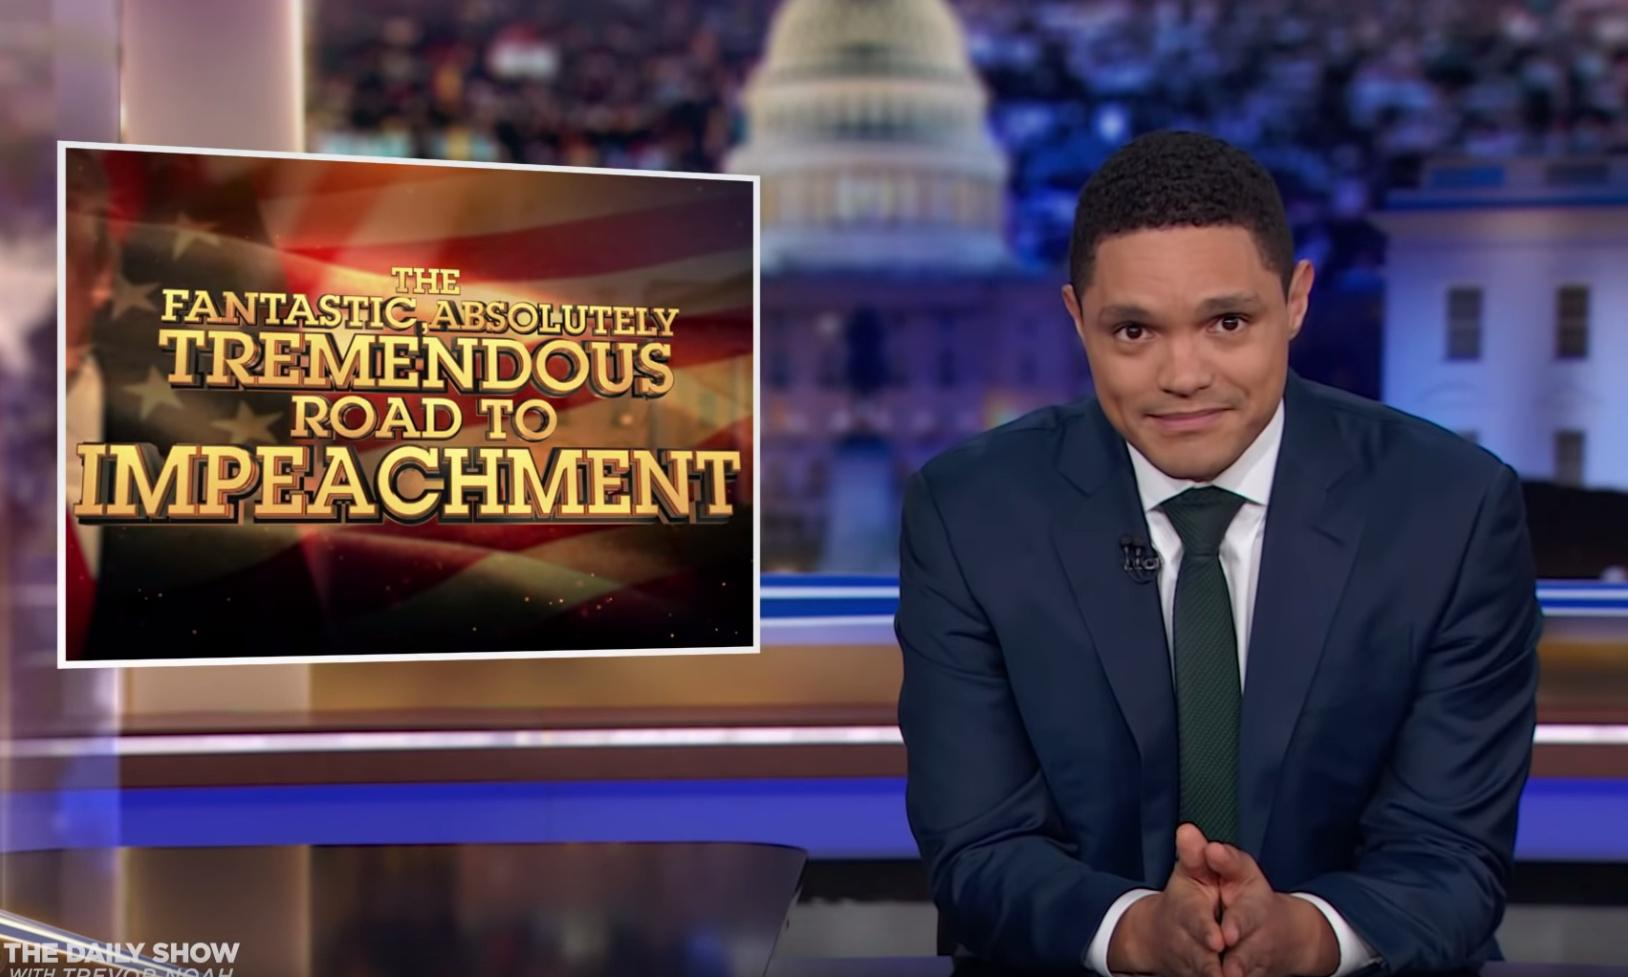 Trevor Noah on Trump: 'You don't need to be explicit to set up a shady deal'